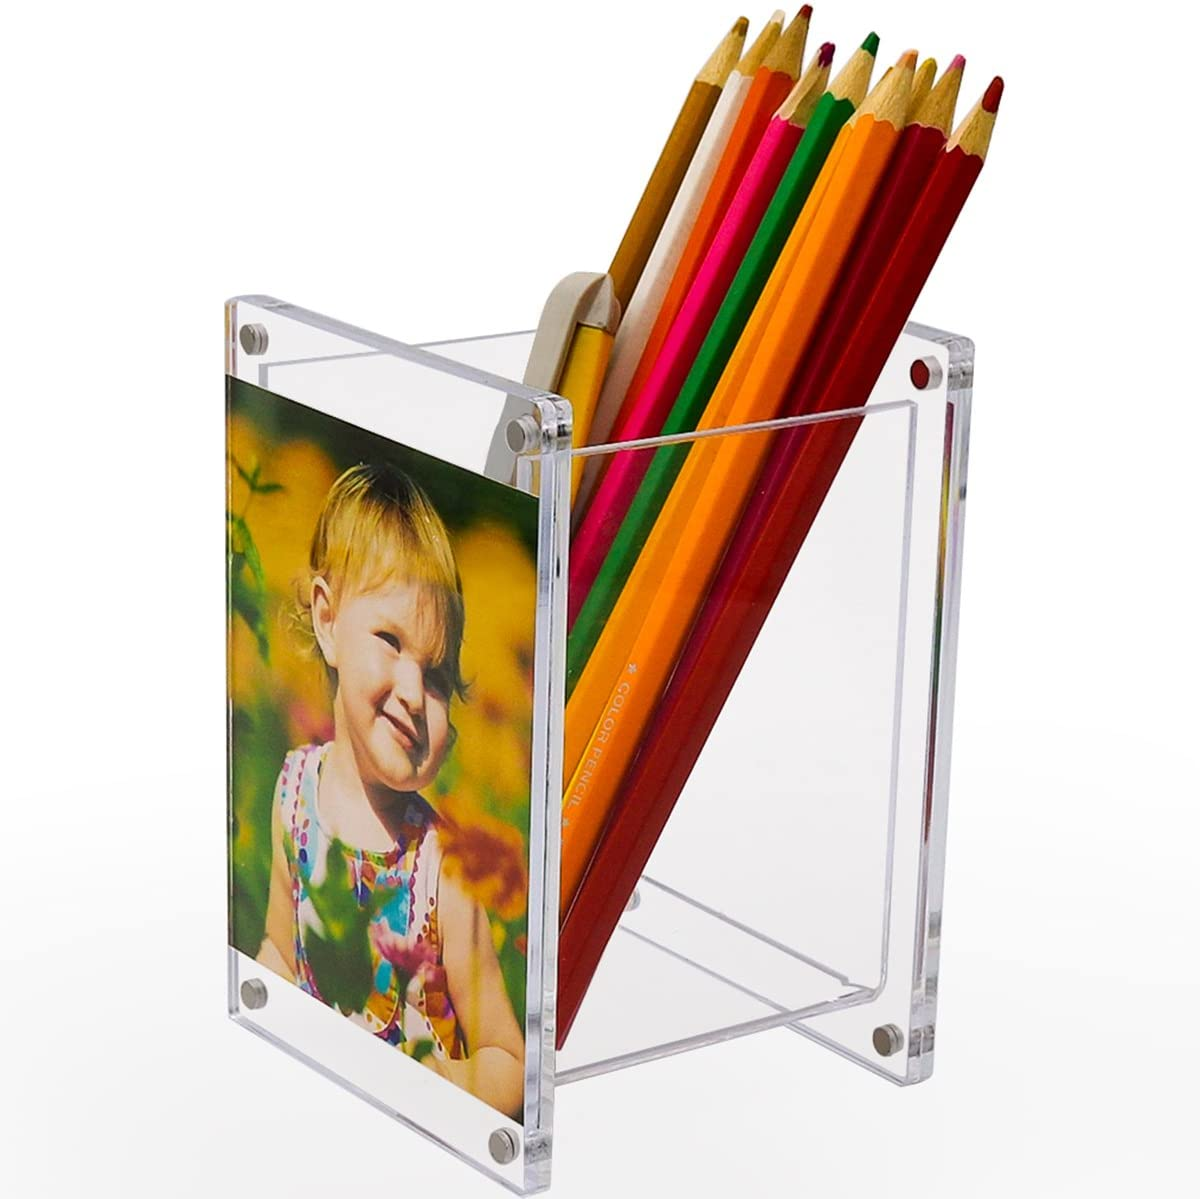 Clear Cute Pencil Cup Holder with two Magenetic Picture Frame for Home Office and Kids Acrylic Pen Holder